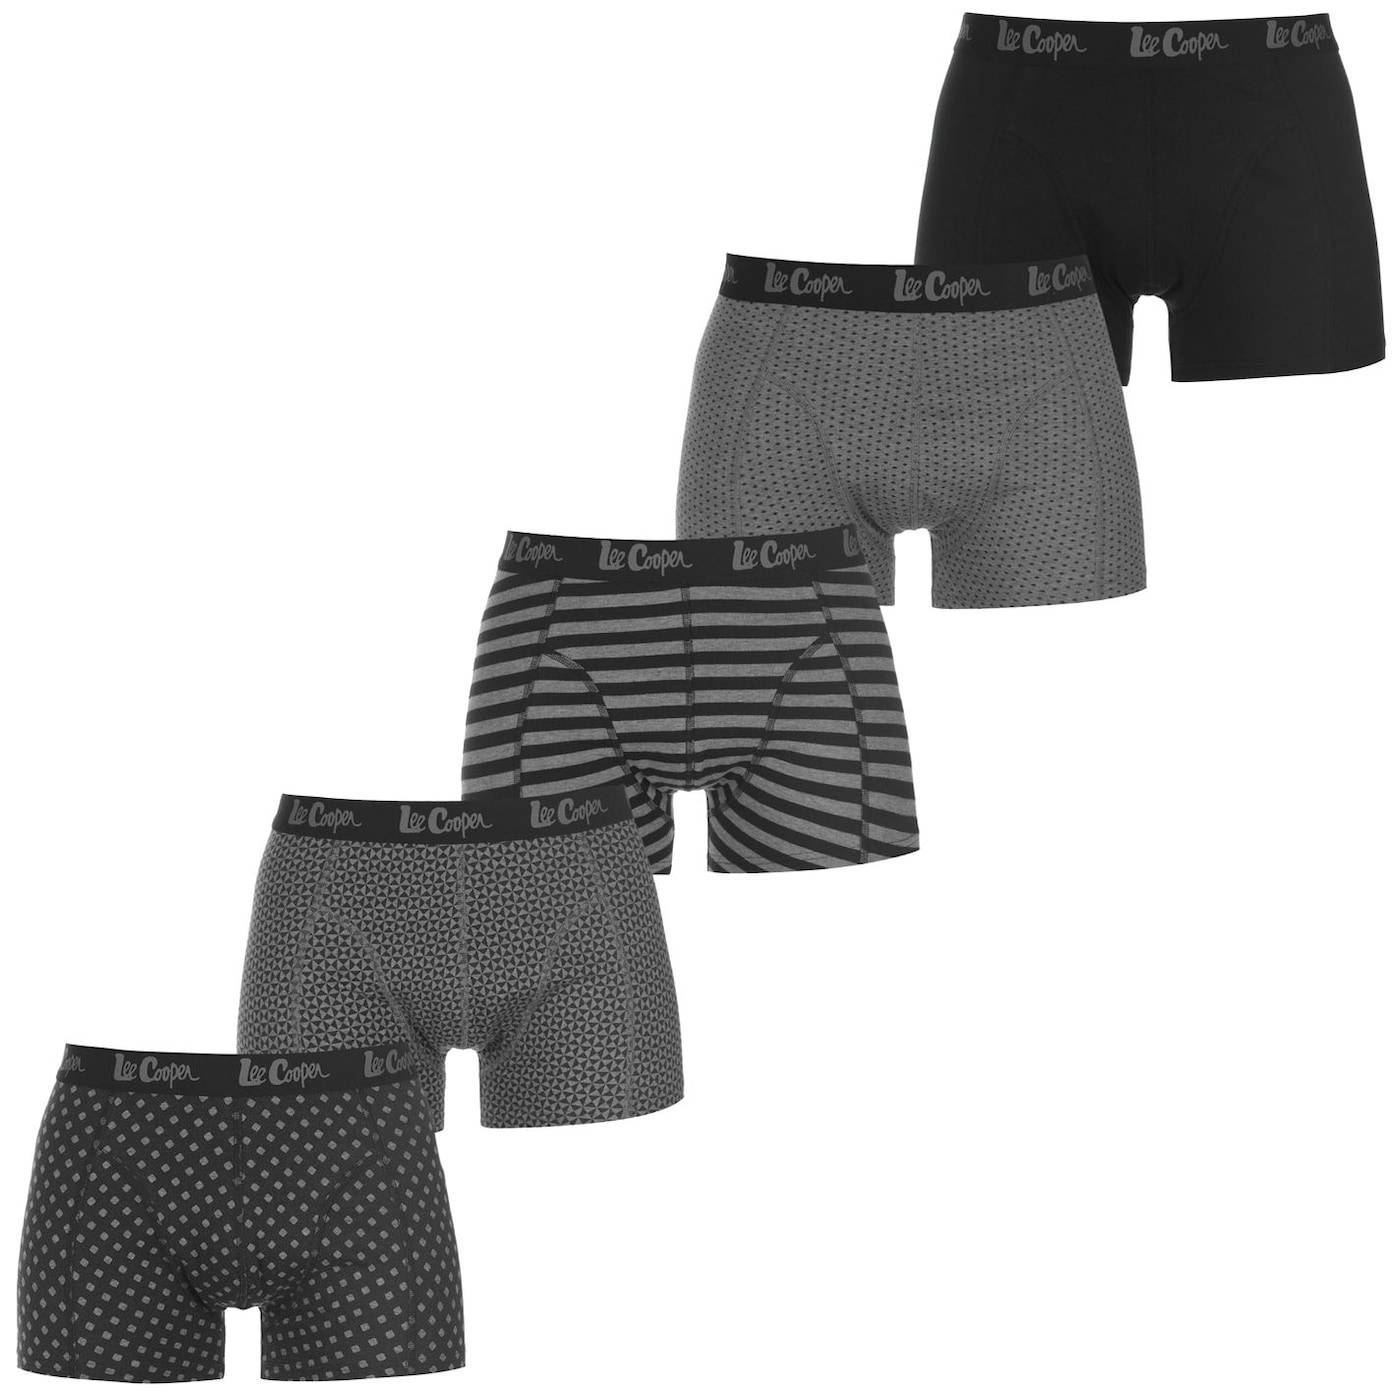 Lee Cooper Hipster Print Trunks 5 Pack pánske